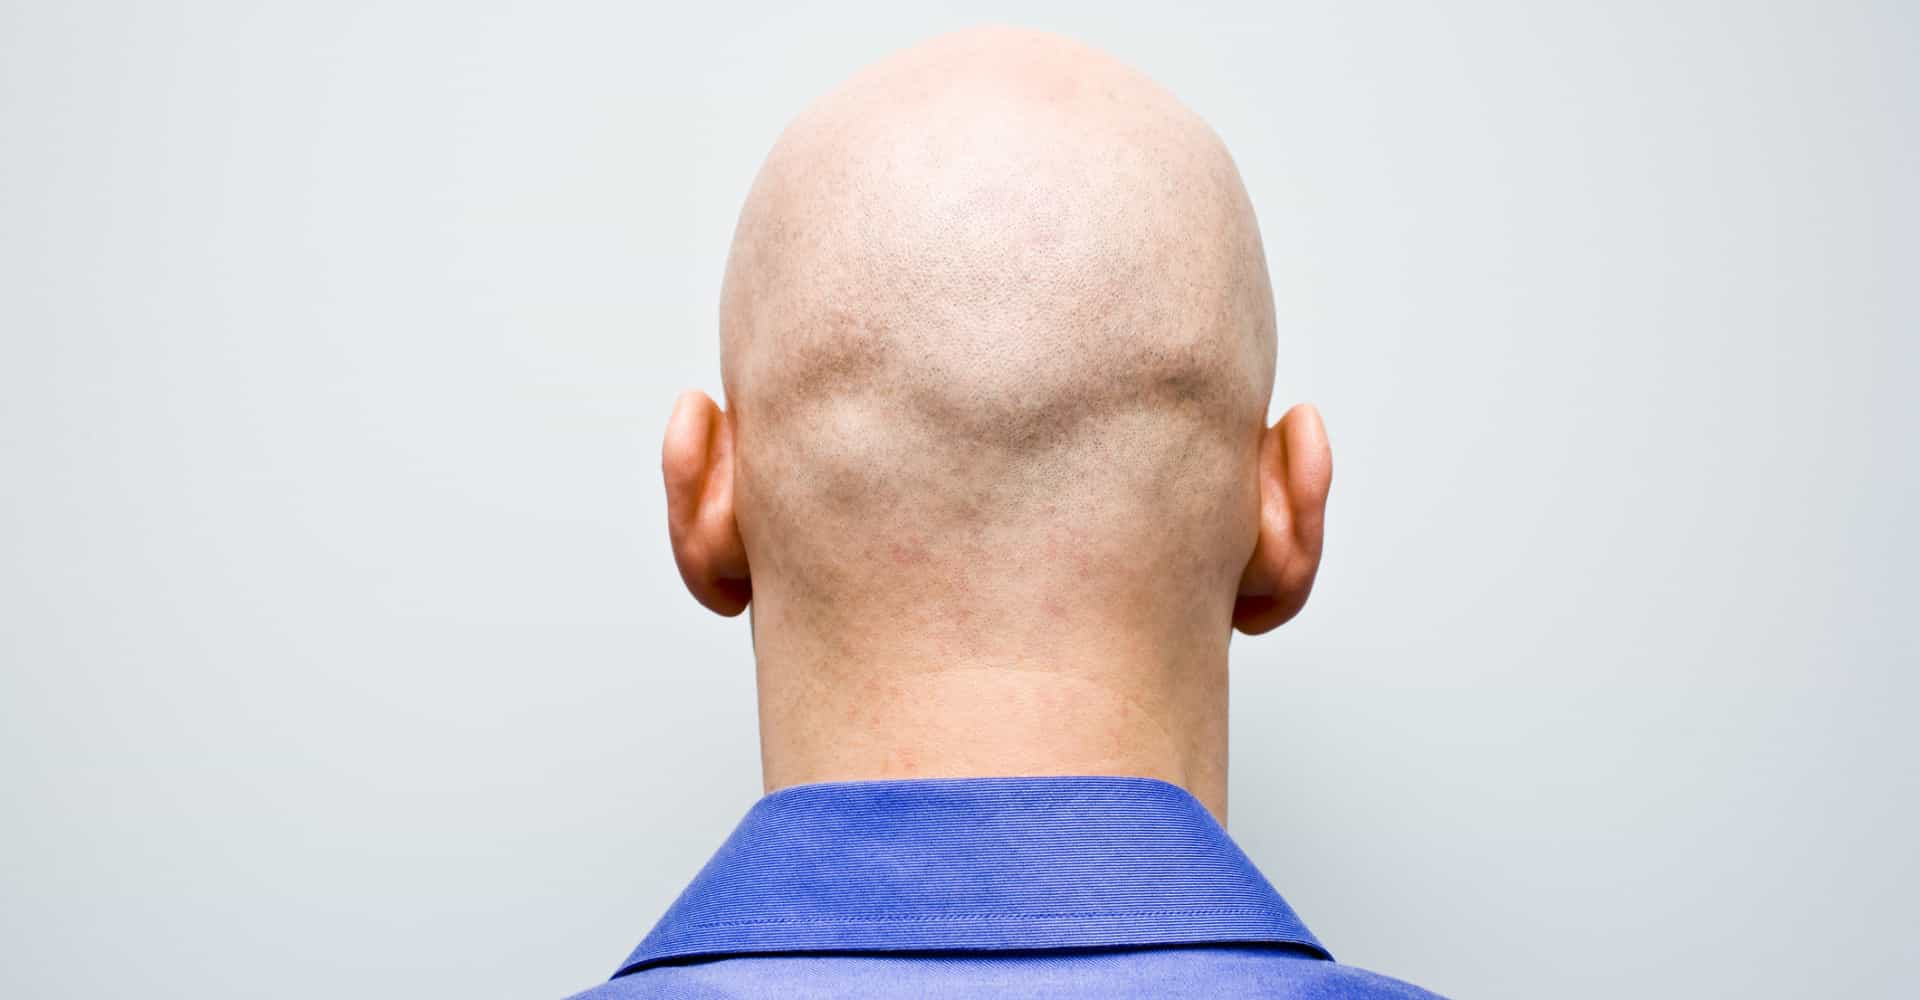 Myths and truths about hair loss